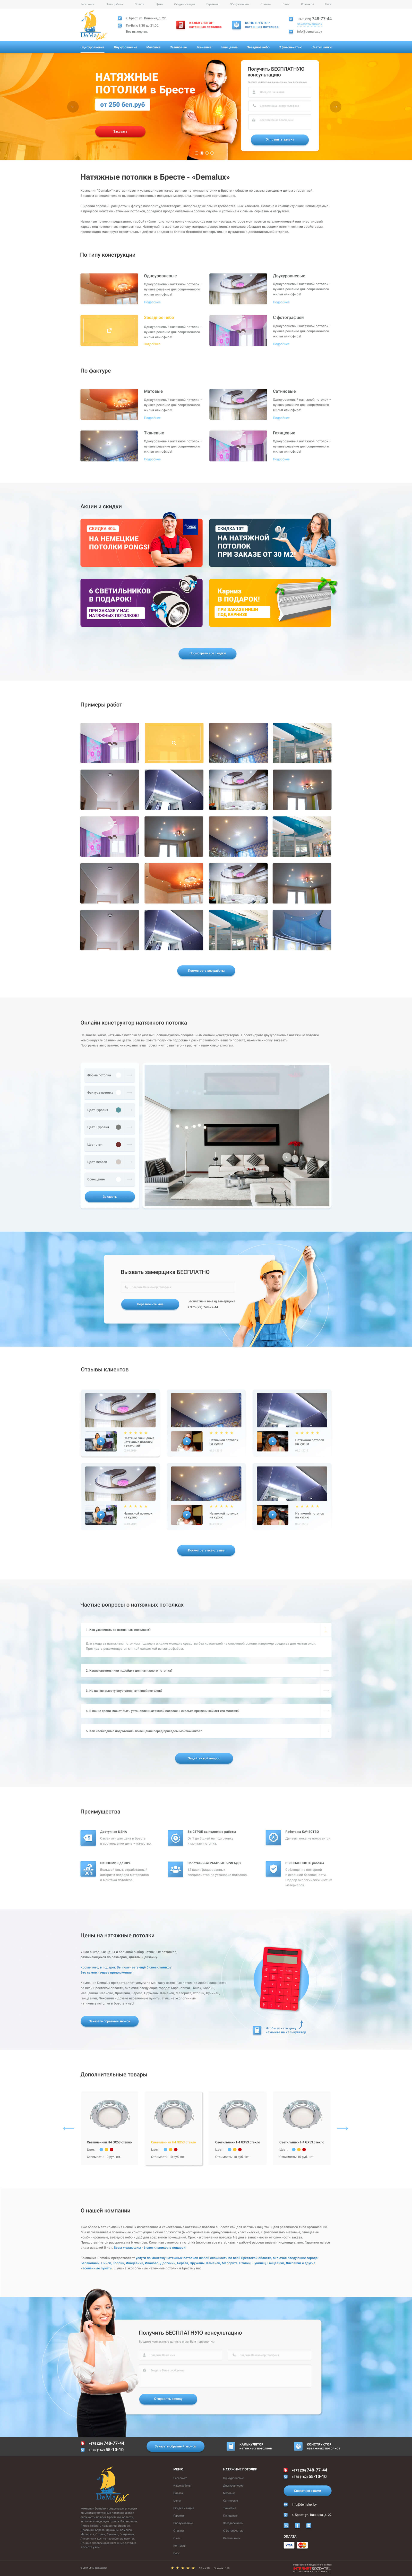 web site design for stretch ceilings